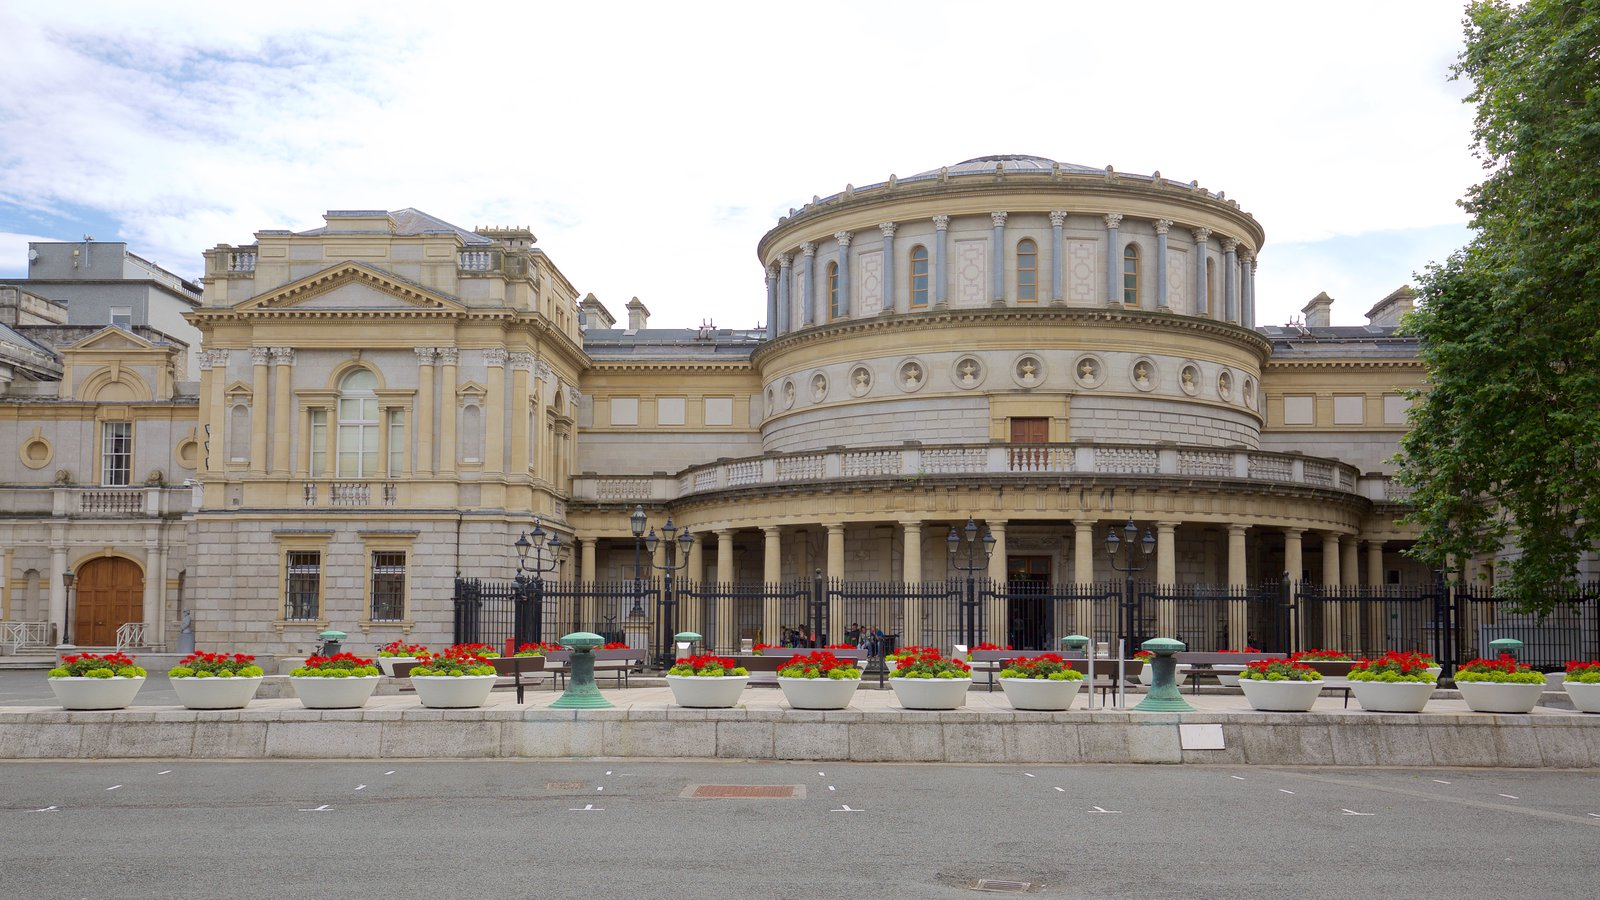 National Museum of Ireland - Archaeology and History featuring heritage elements, an administrative buidling and heritage architecture